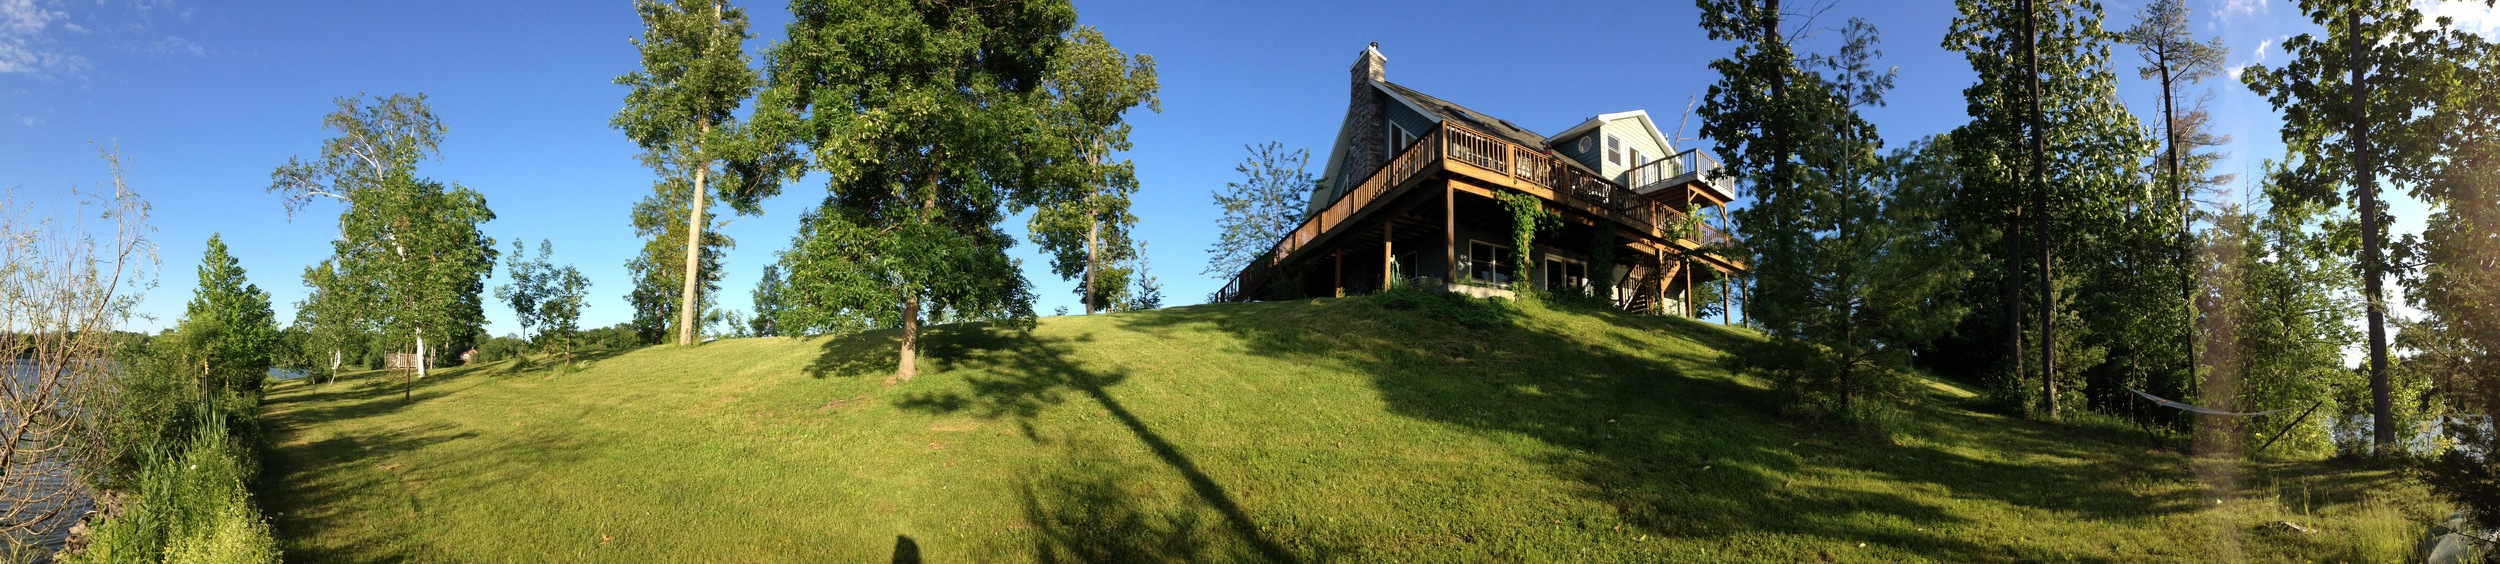 upstate panoramic house.jpg